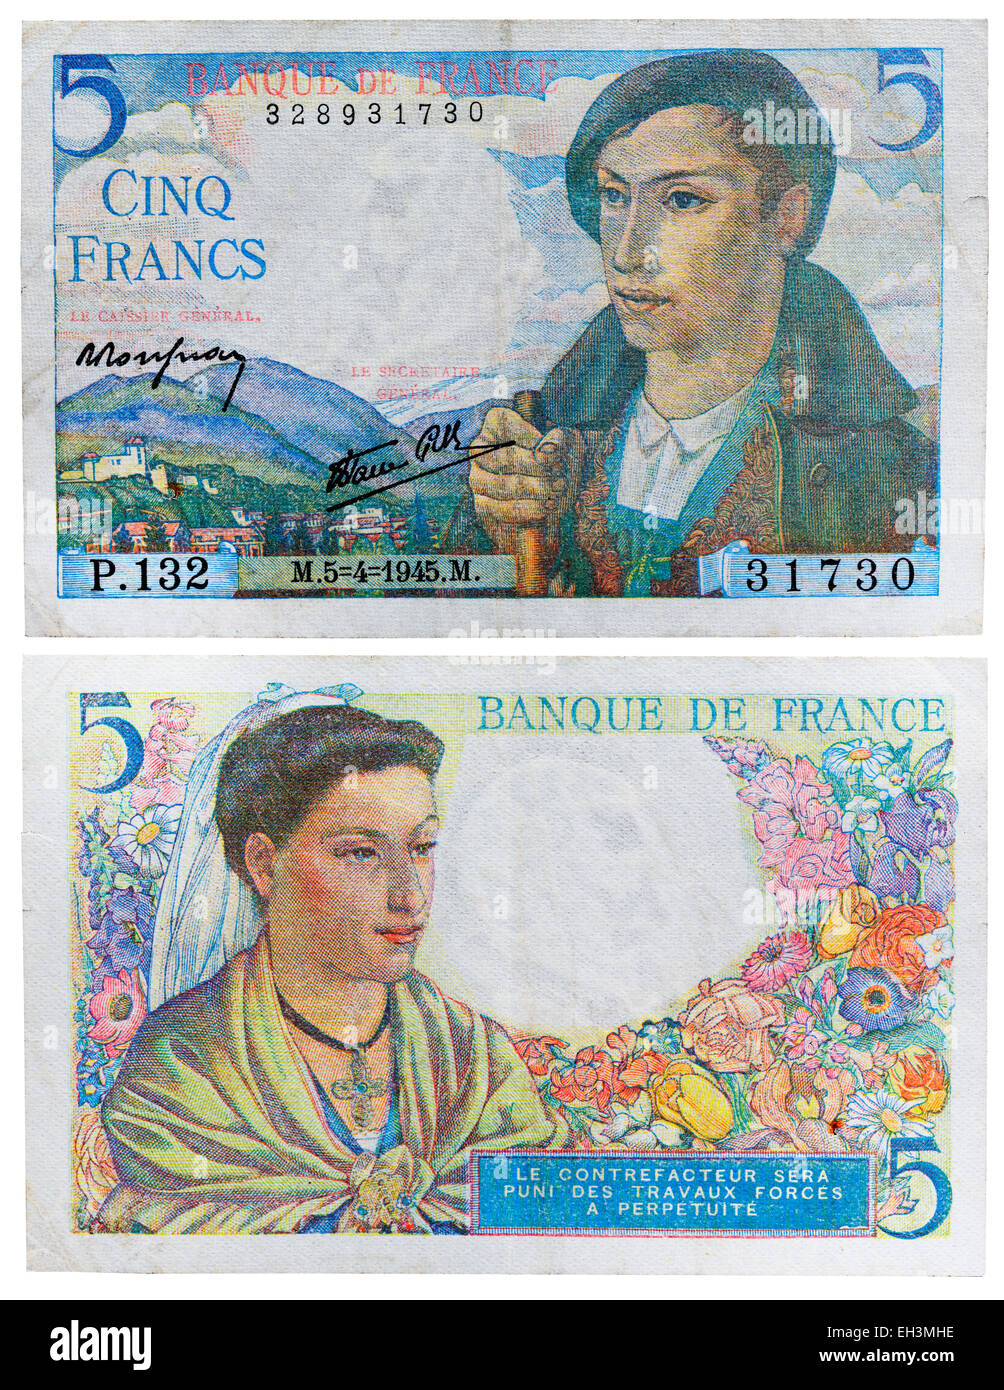 5 francs banknote, Pyrenean shepherd and Aquitaine woman, France, 1945 - Stock Image